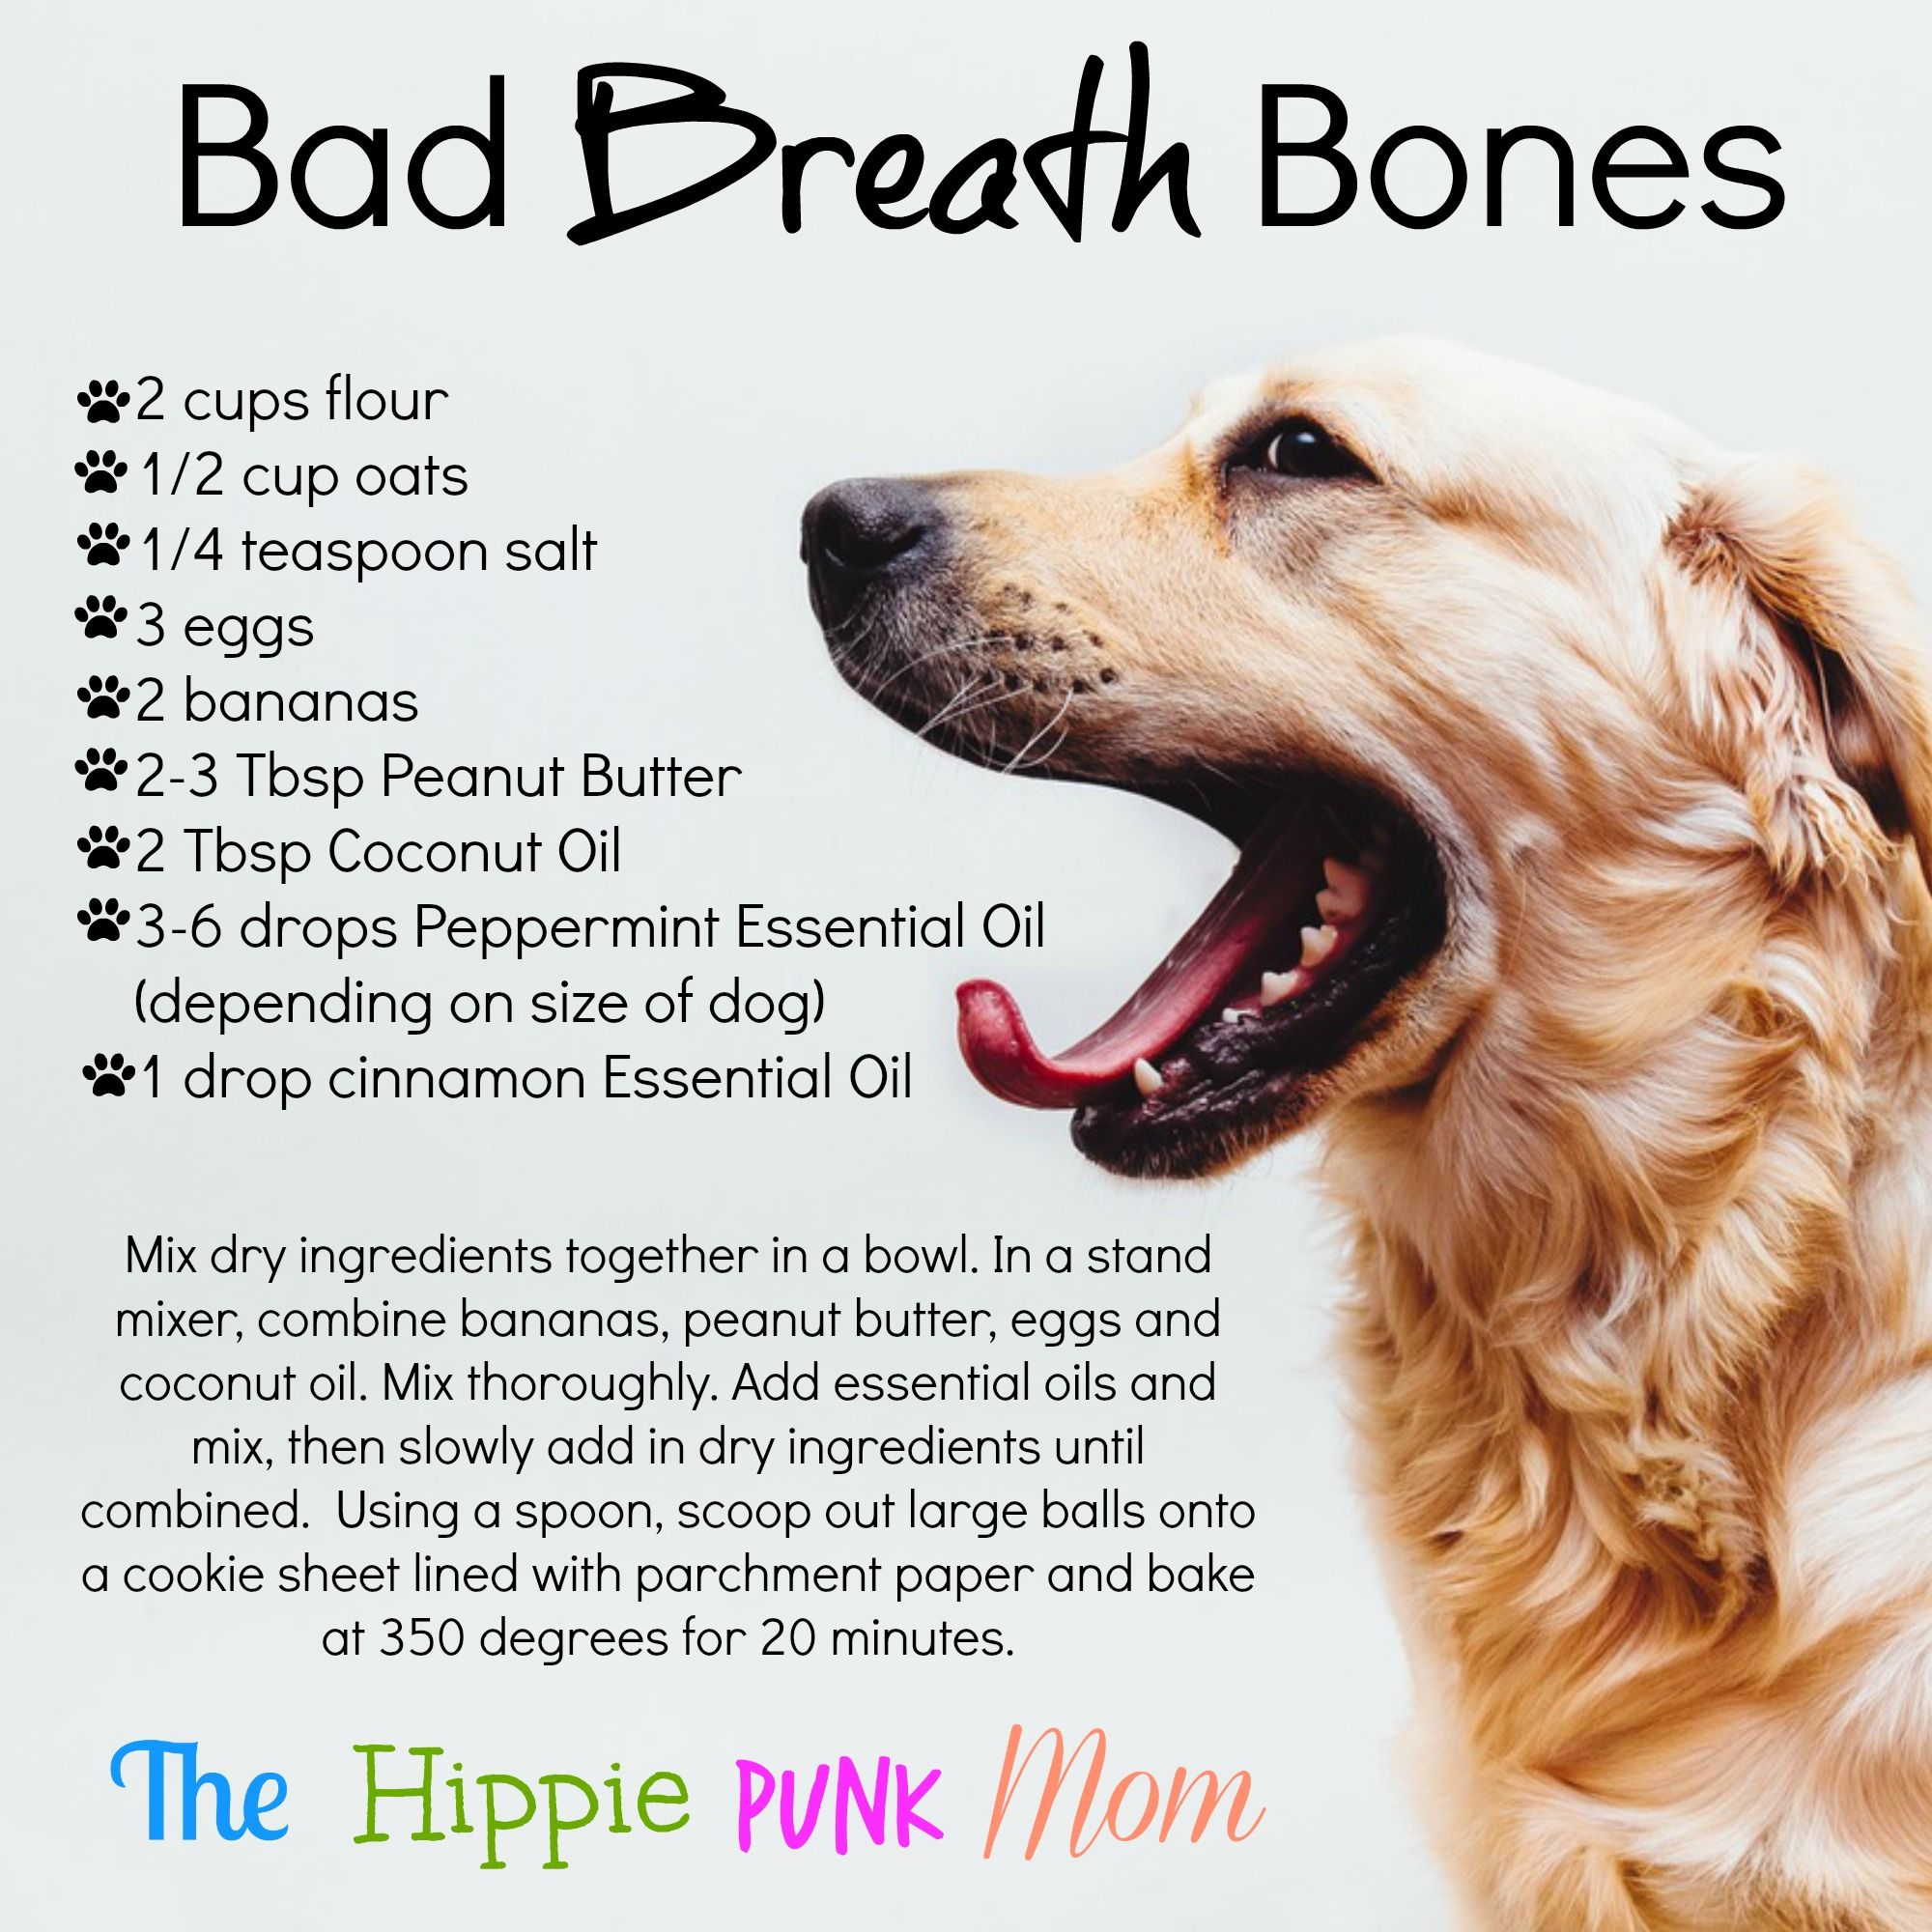 Diy Bad Breath Bones For Your Pup Or Dog Contain Essential Oils, Be Sure